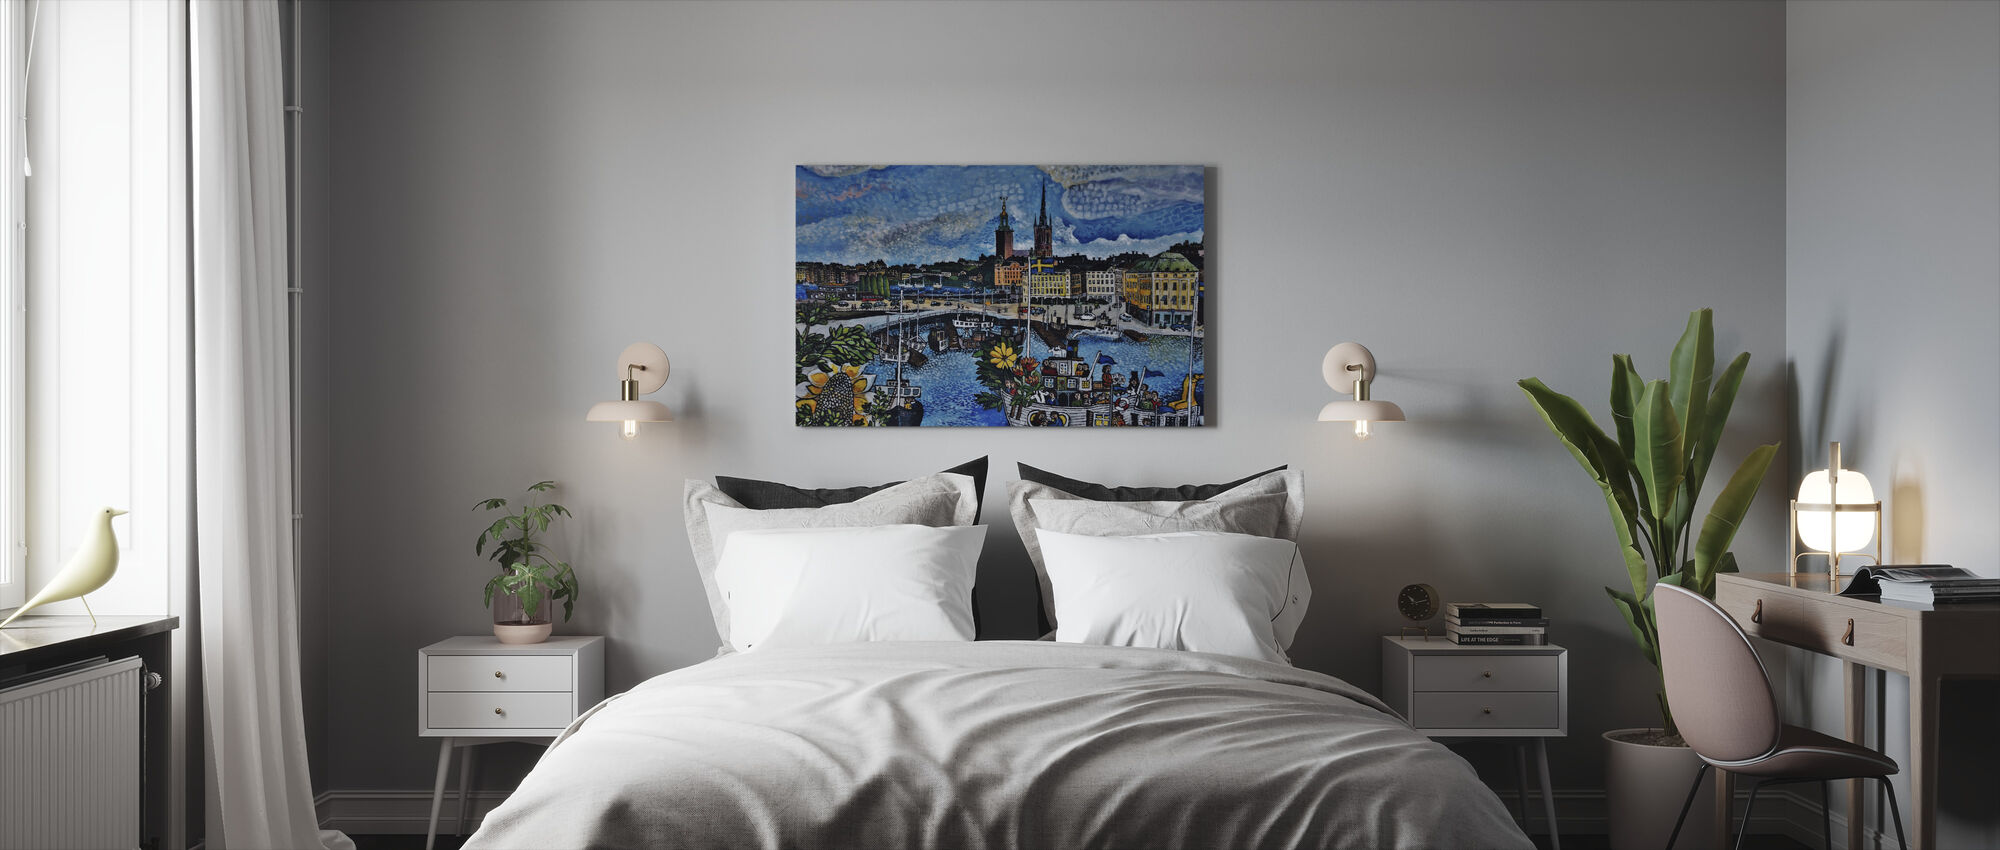 City Pier Painting - Canvas print - Bedroom